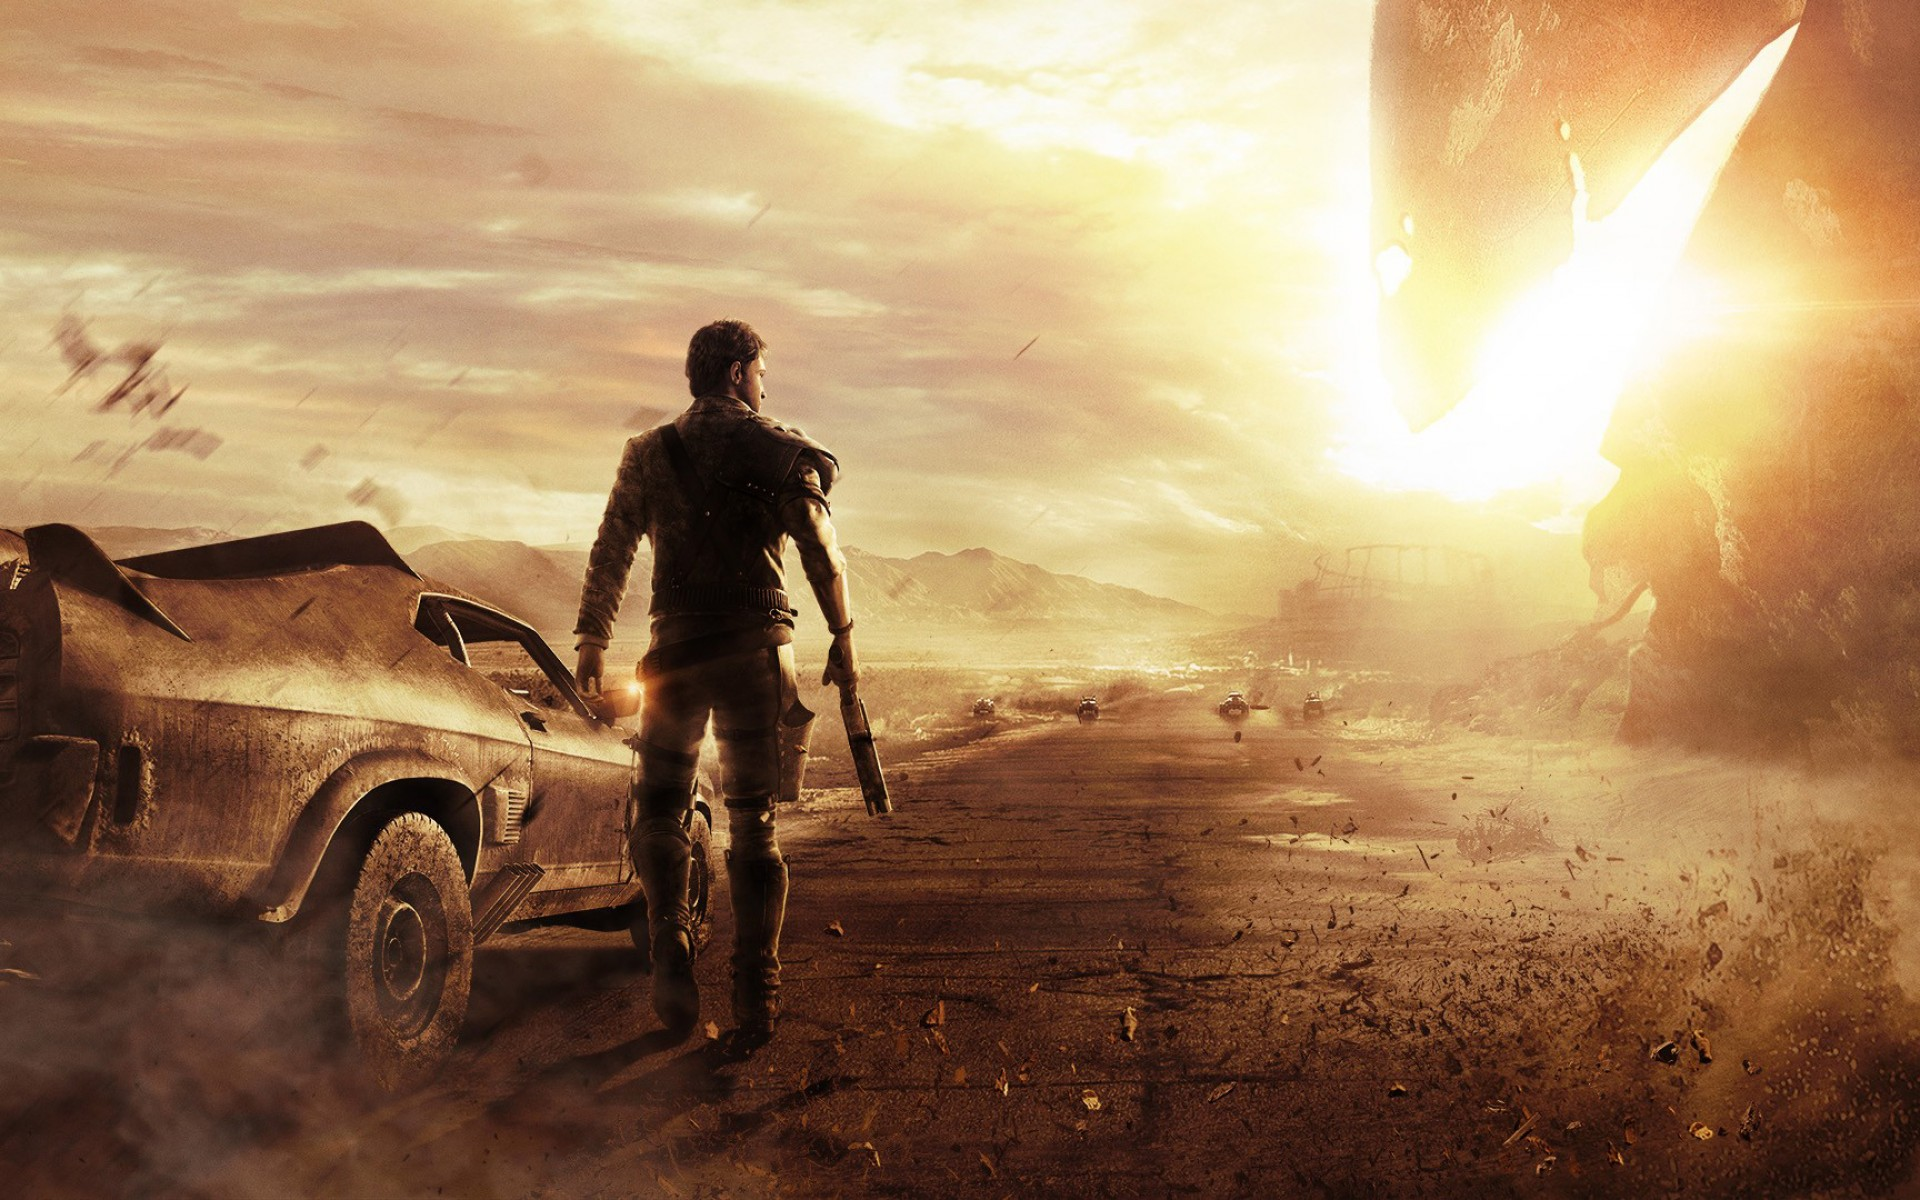 """Mad Max"" Gameplay Overview - The Wasteland Is No Place For A Conscience"